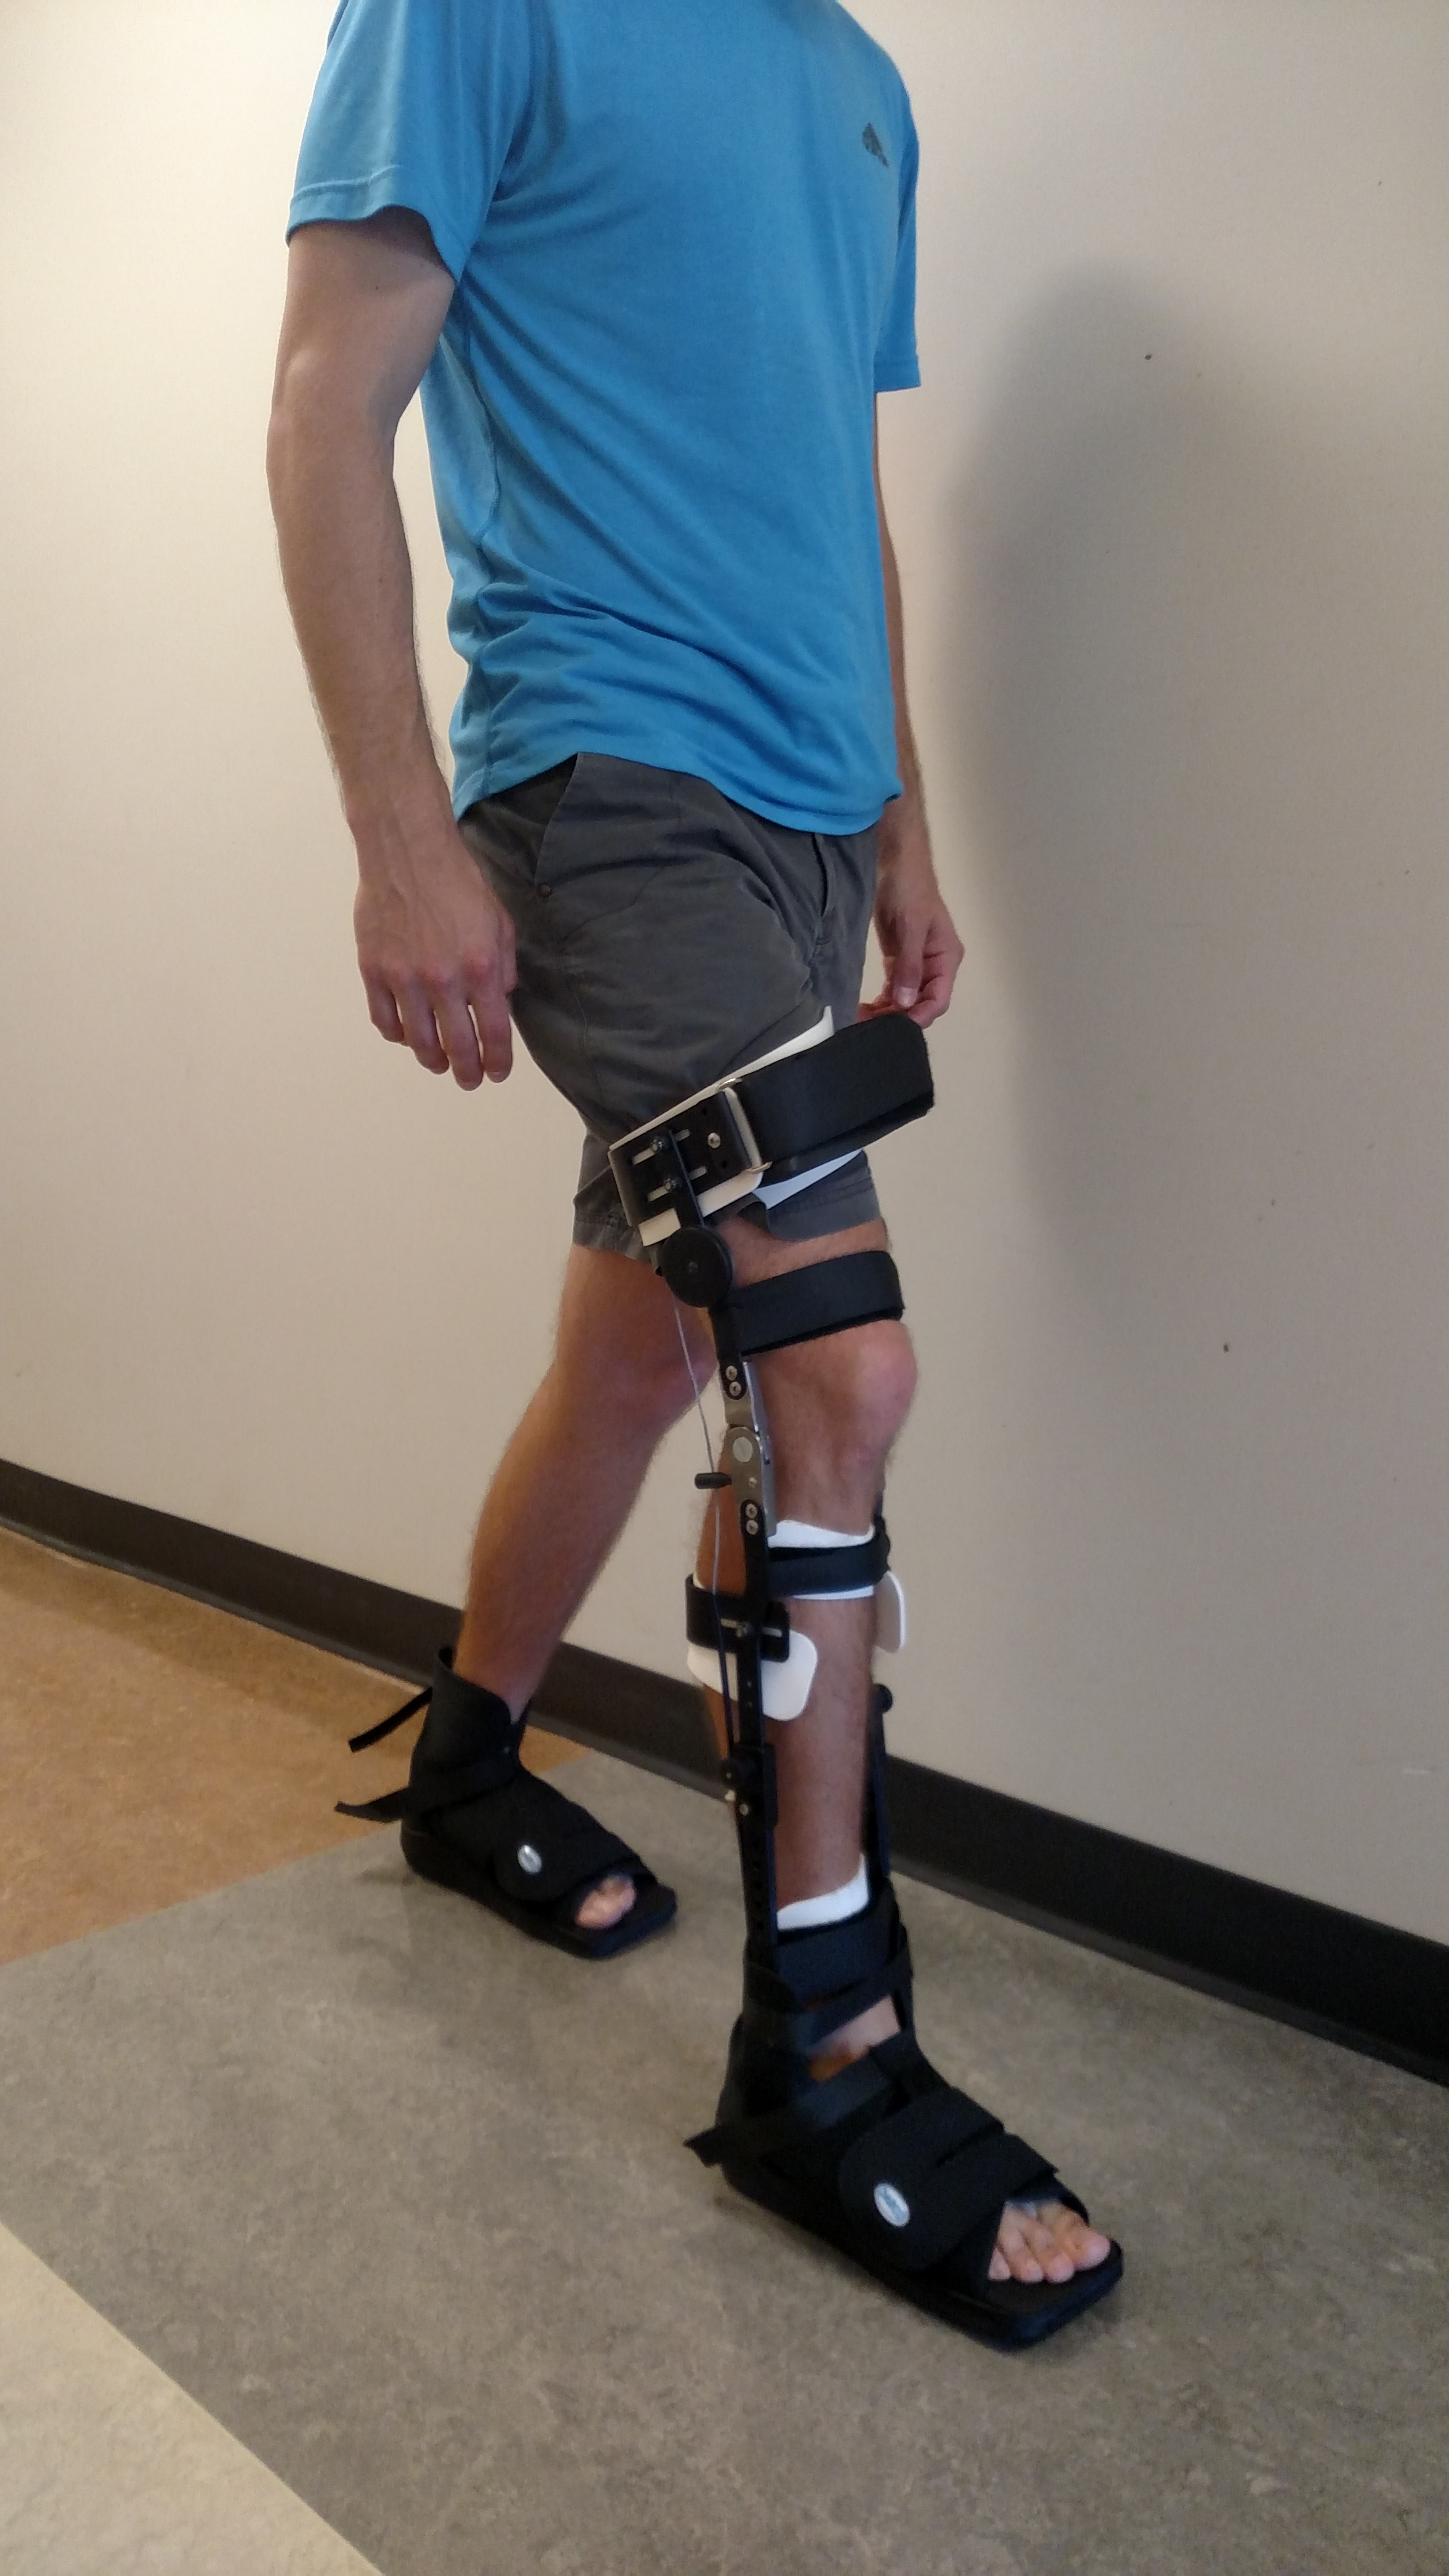 Applying stance phase knee control during gait for people with stroke undergoing inpatient rehabilitation.